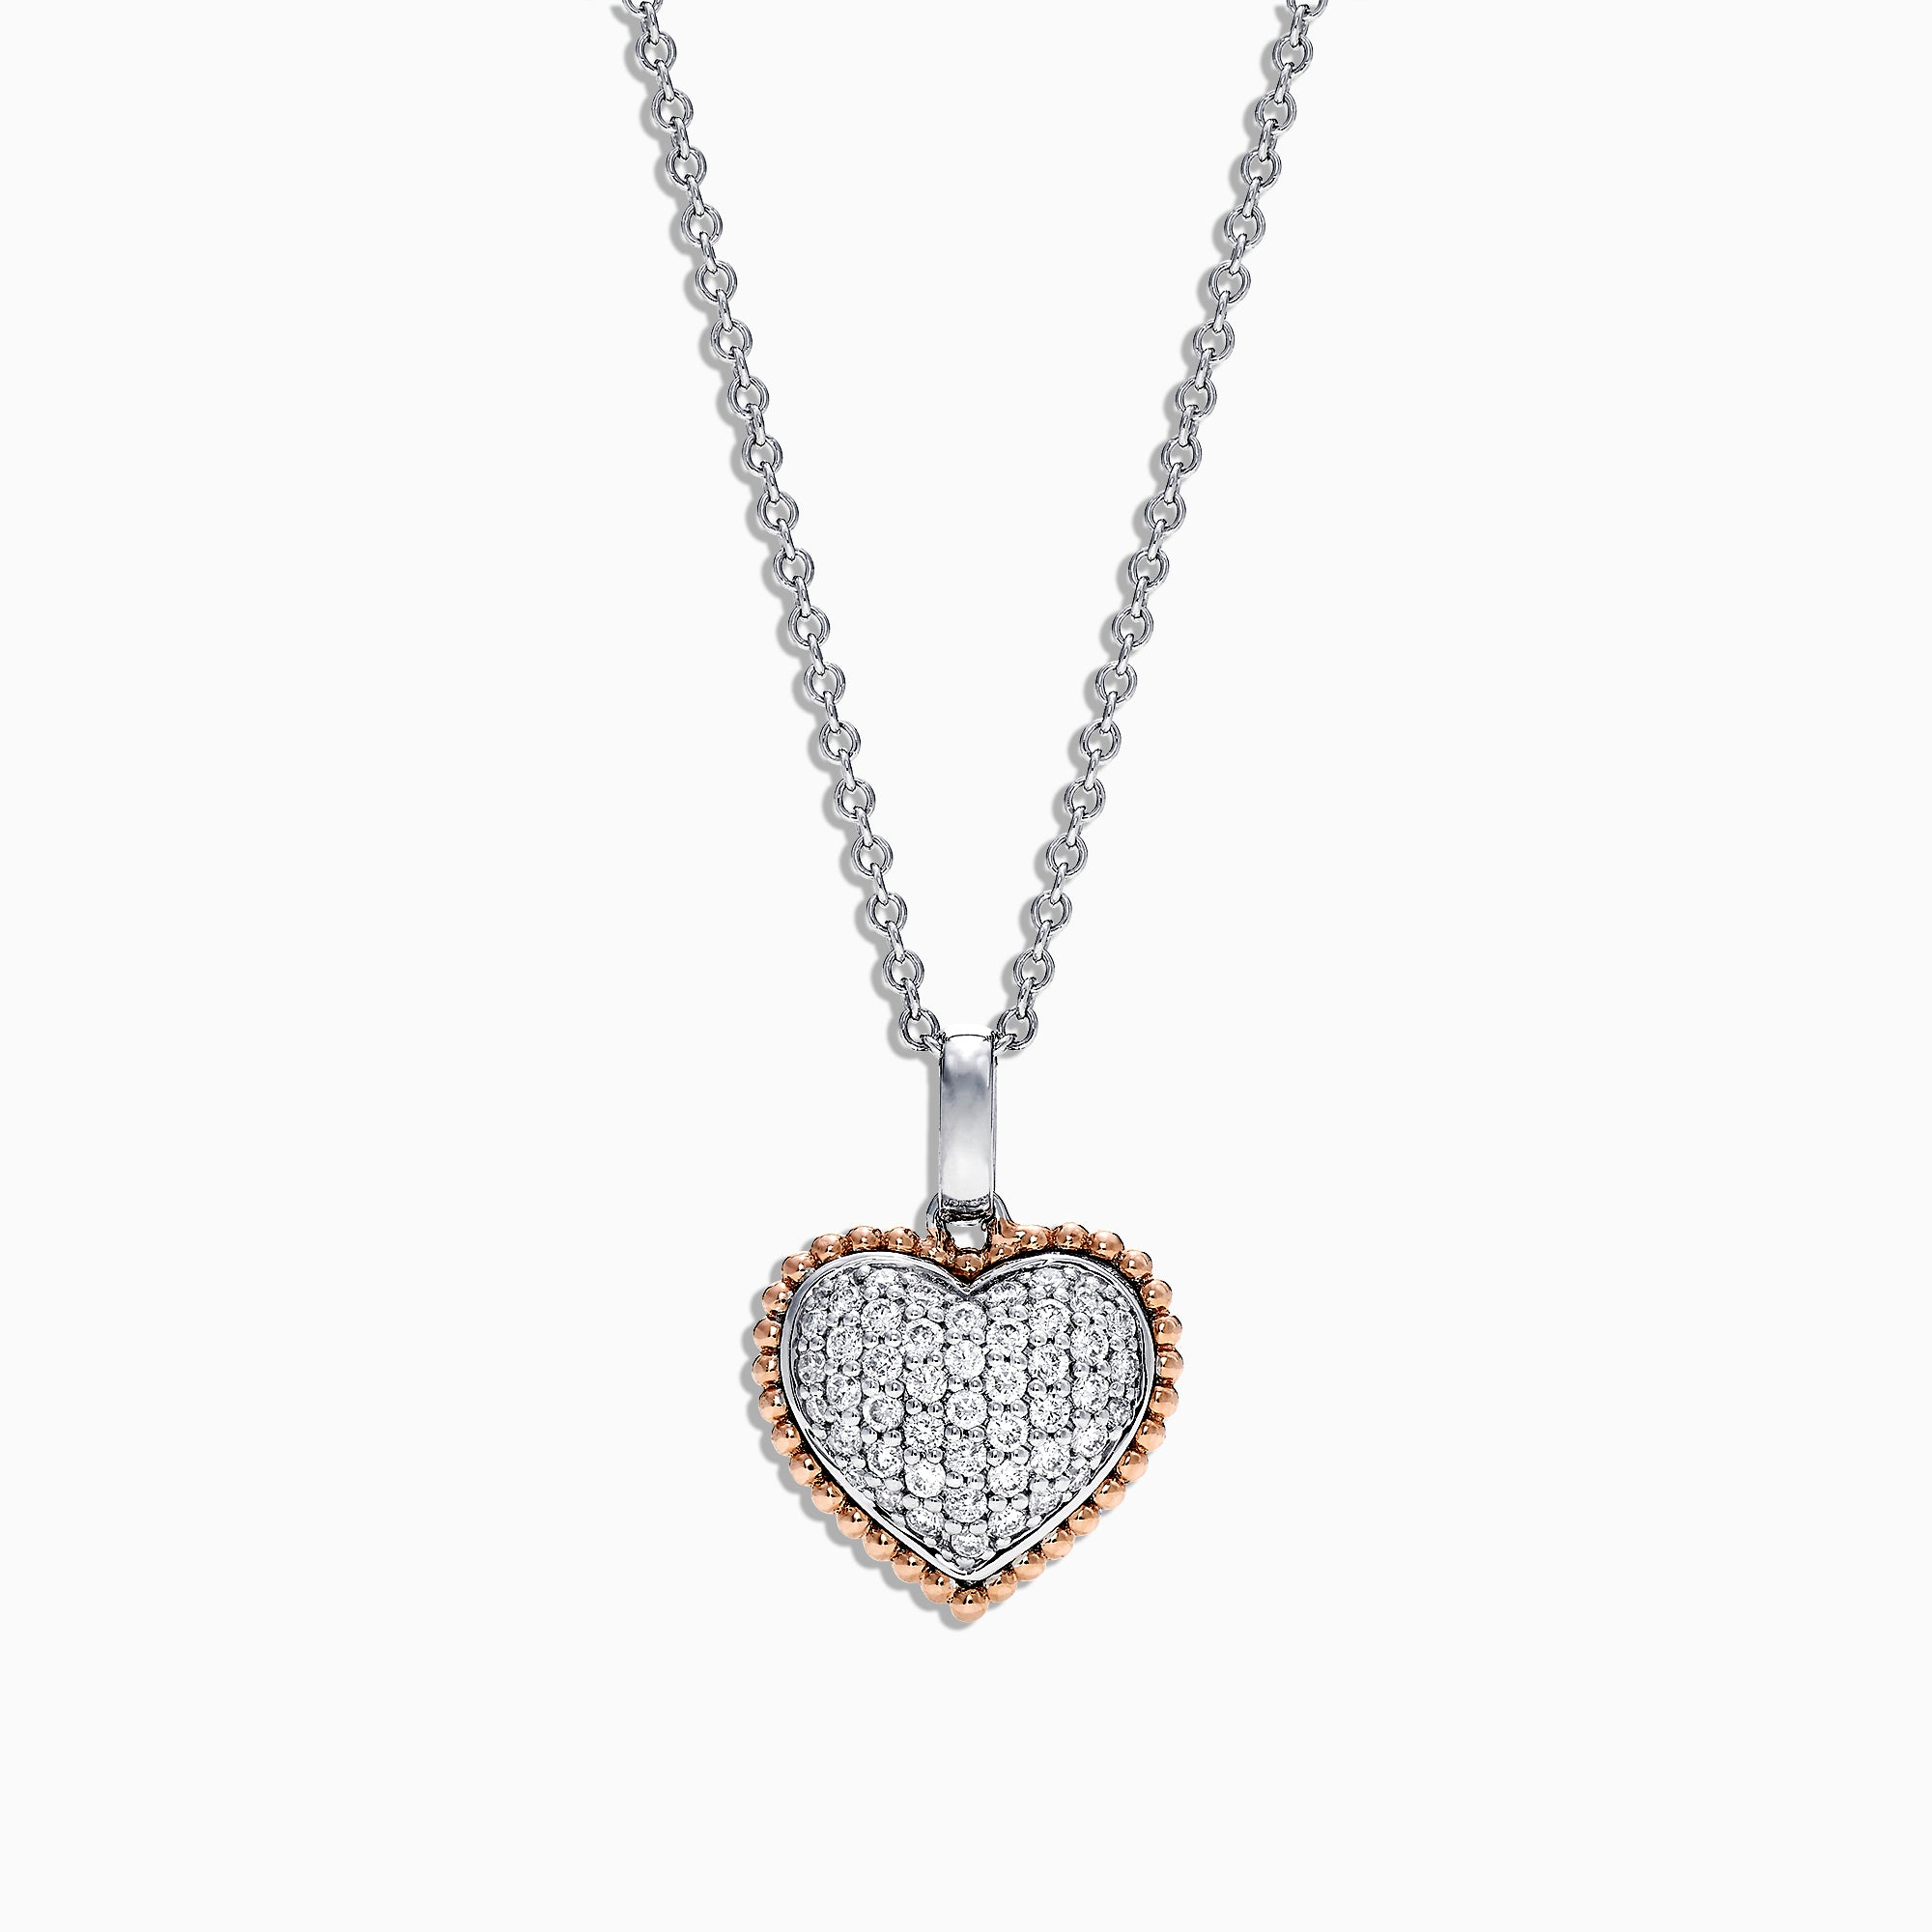 Effy Novelty 14K Rose and White Gold Diamond Heart Pendant, 0.31 TCW